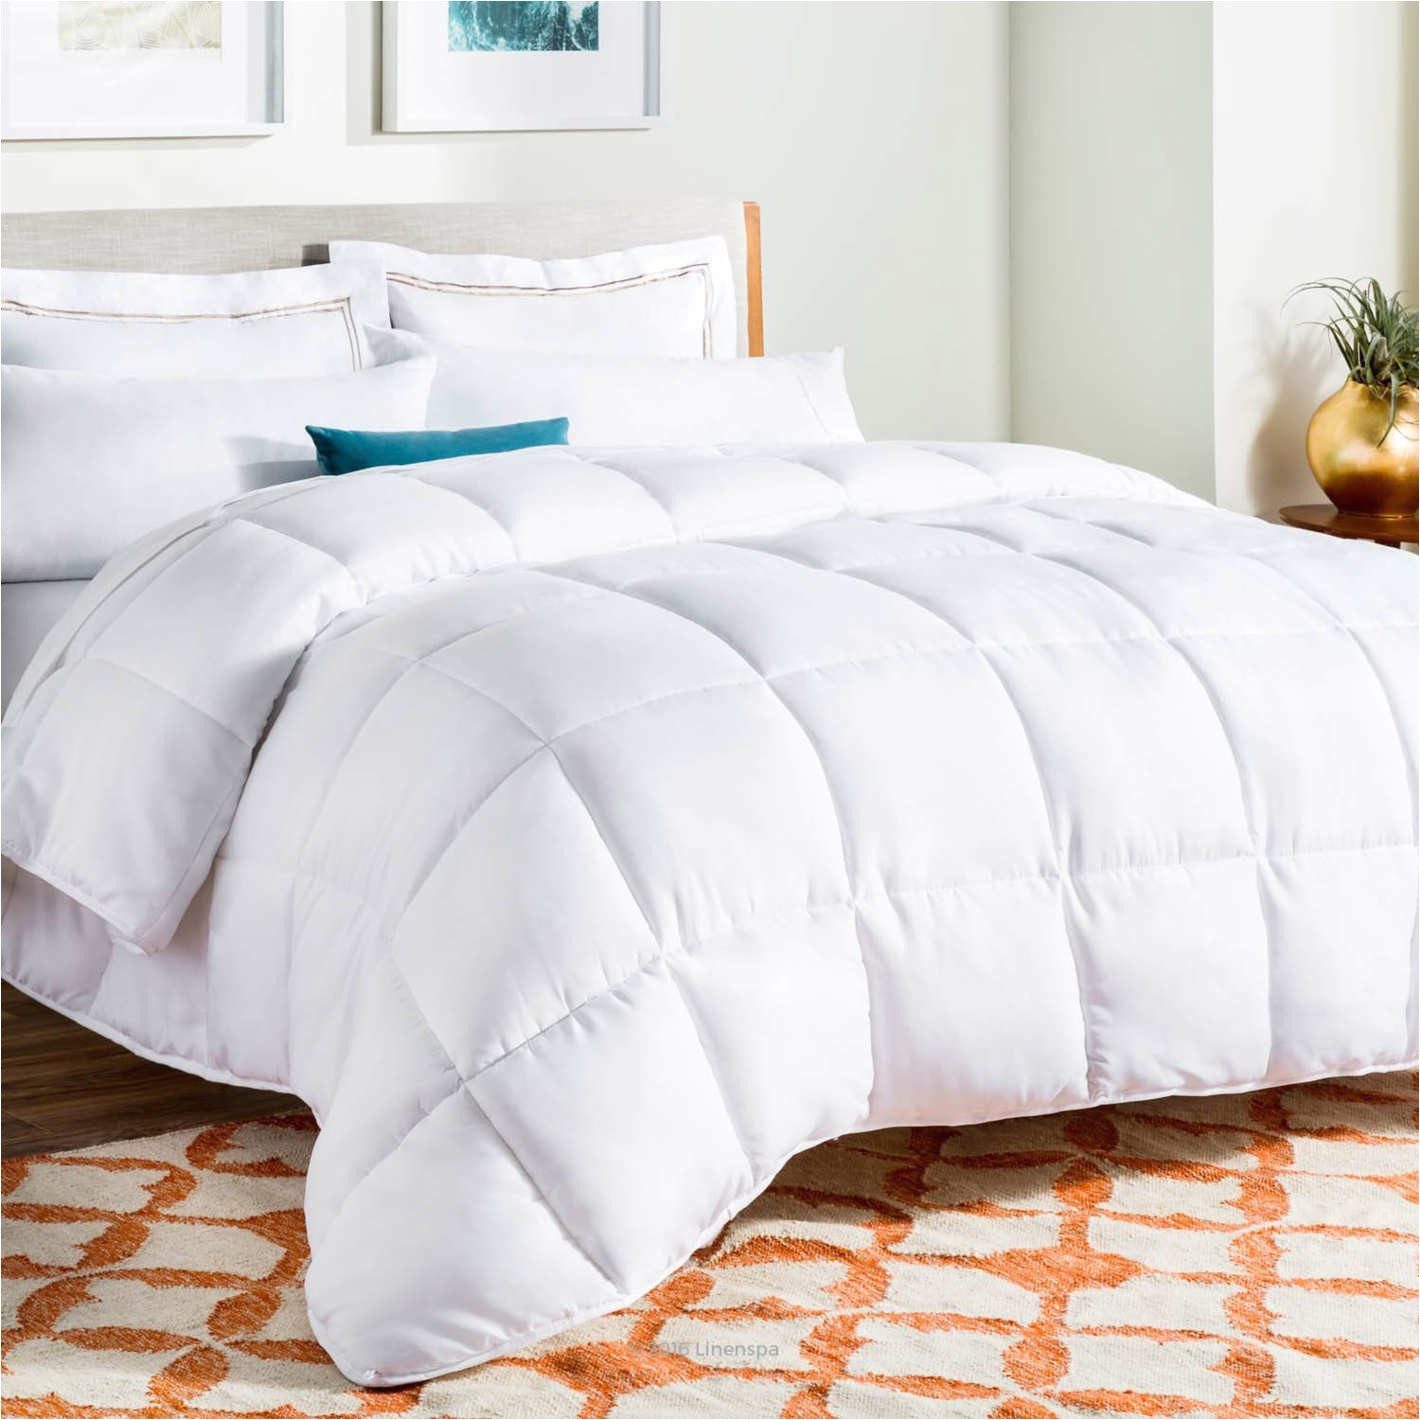 best comforters on amazon